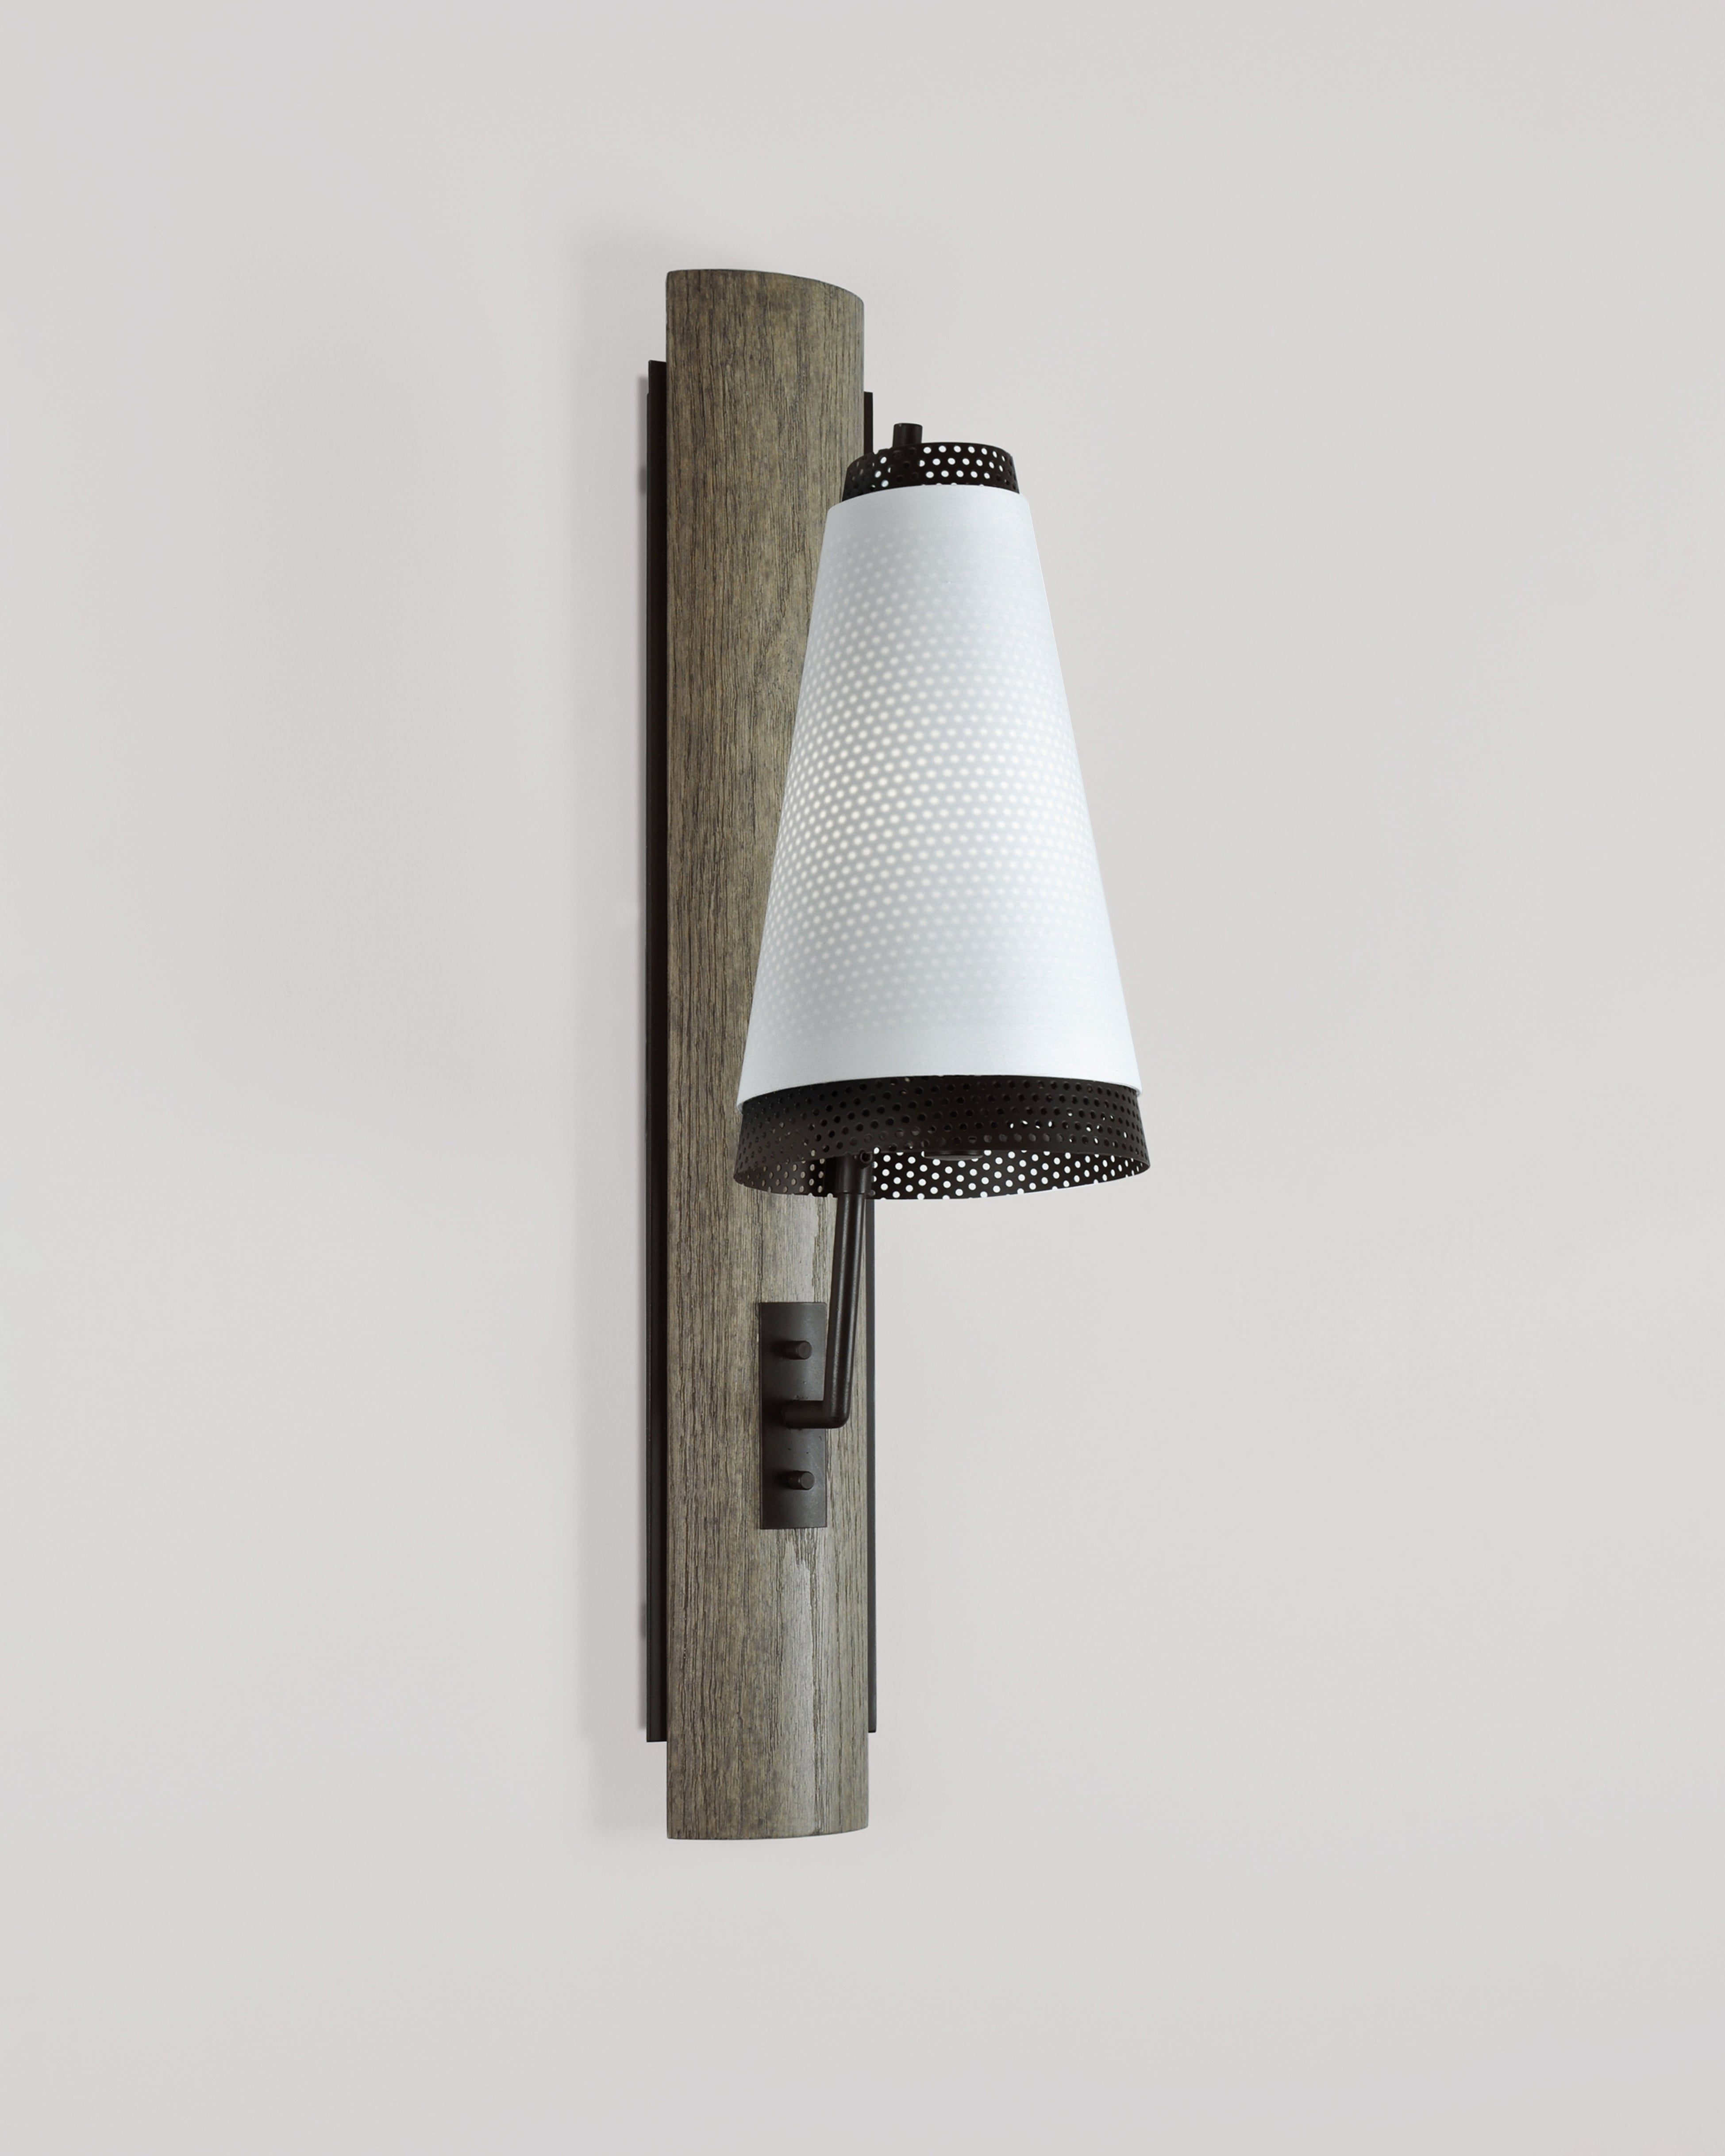 Weathered Oak and Oil Rubbed Bronze with Bright White Silk Pongee